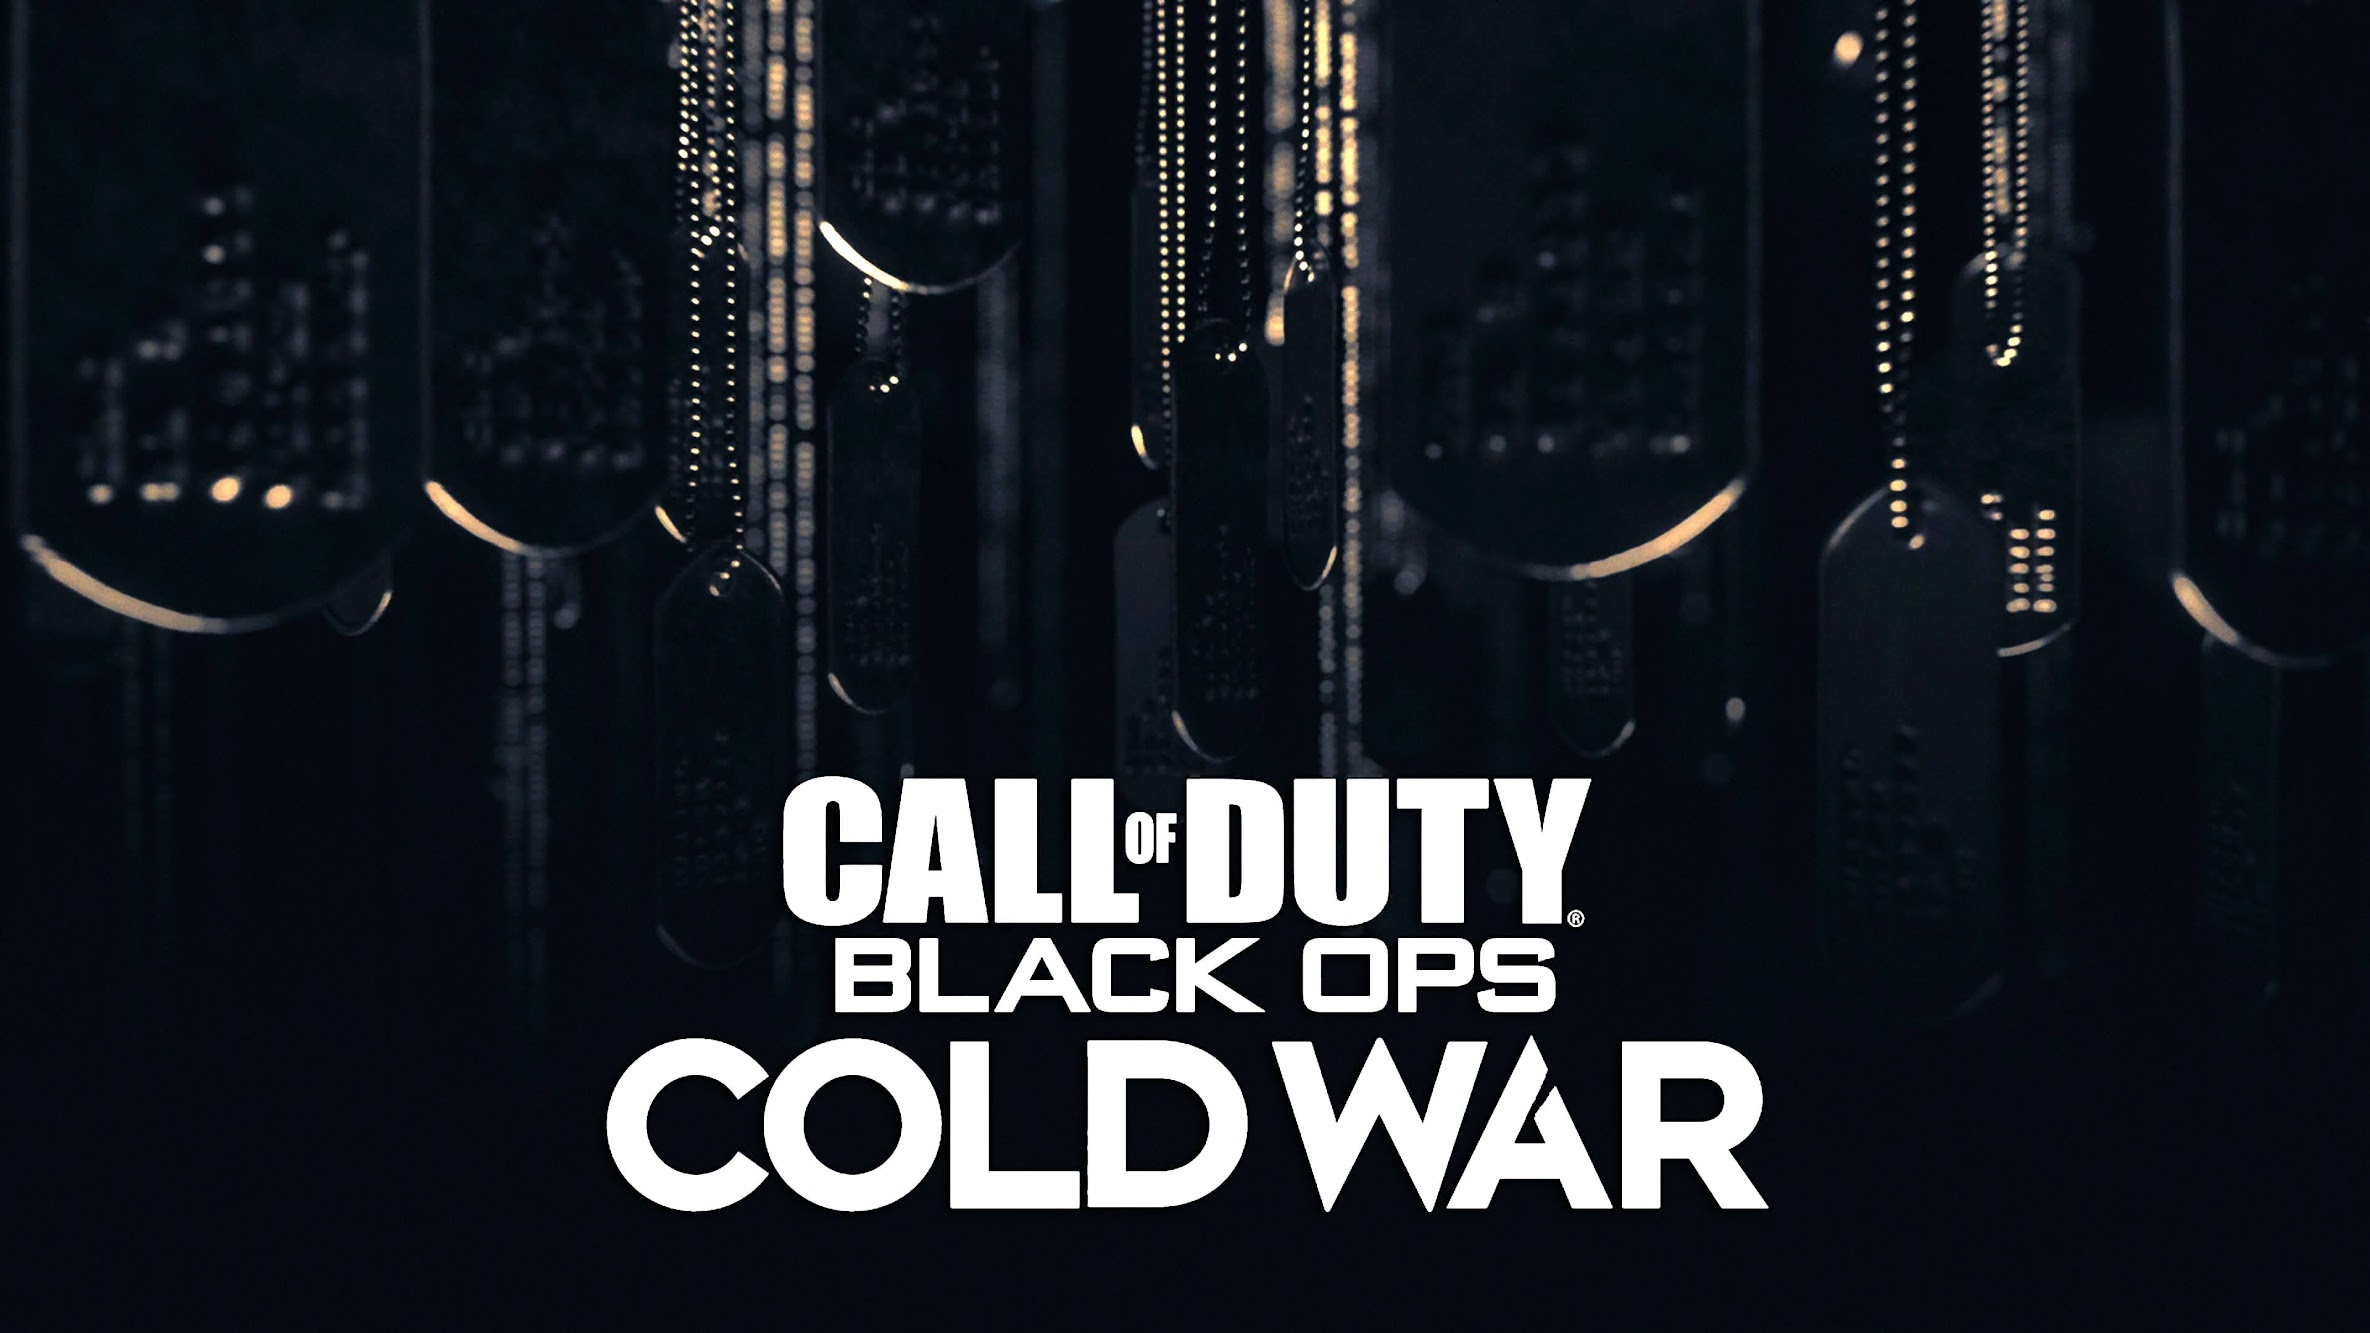 PS4 – Call of Duty : Black Ops – Cold War #5 HARDPOINT ランク30まで